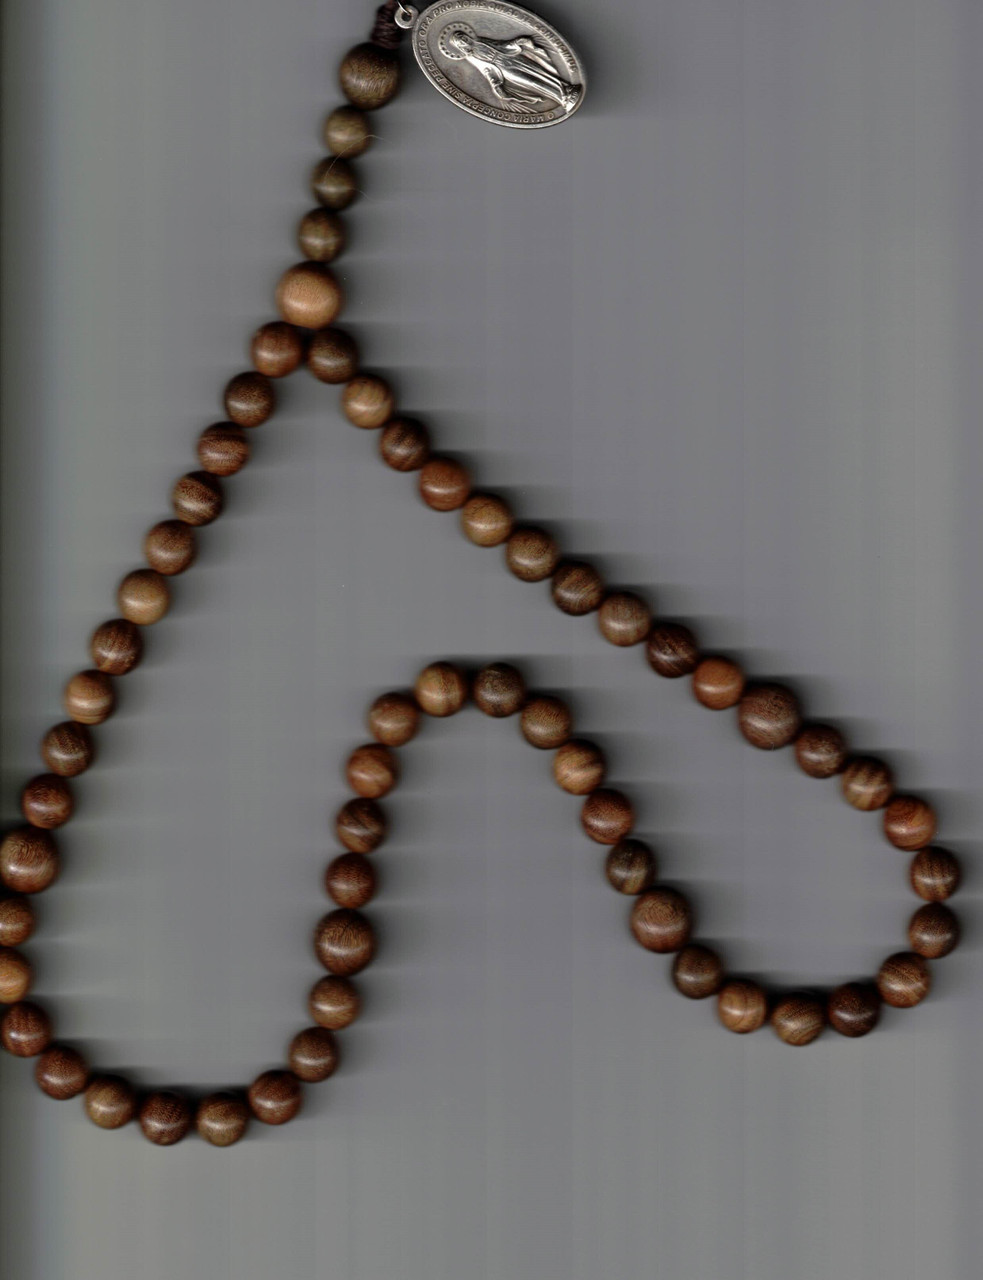 Exotic Wooden Bead Rosary with Miraculous Medal - Handcrafted by Brother Archangelo